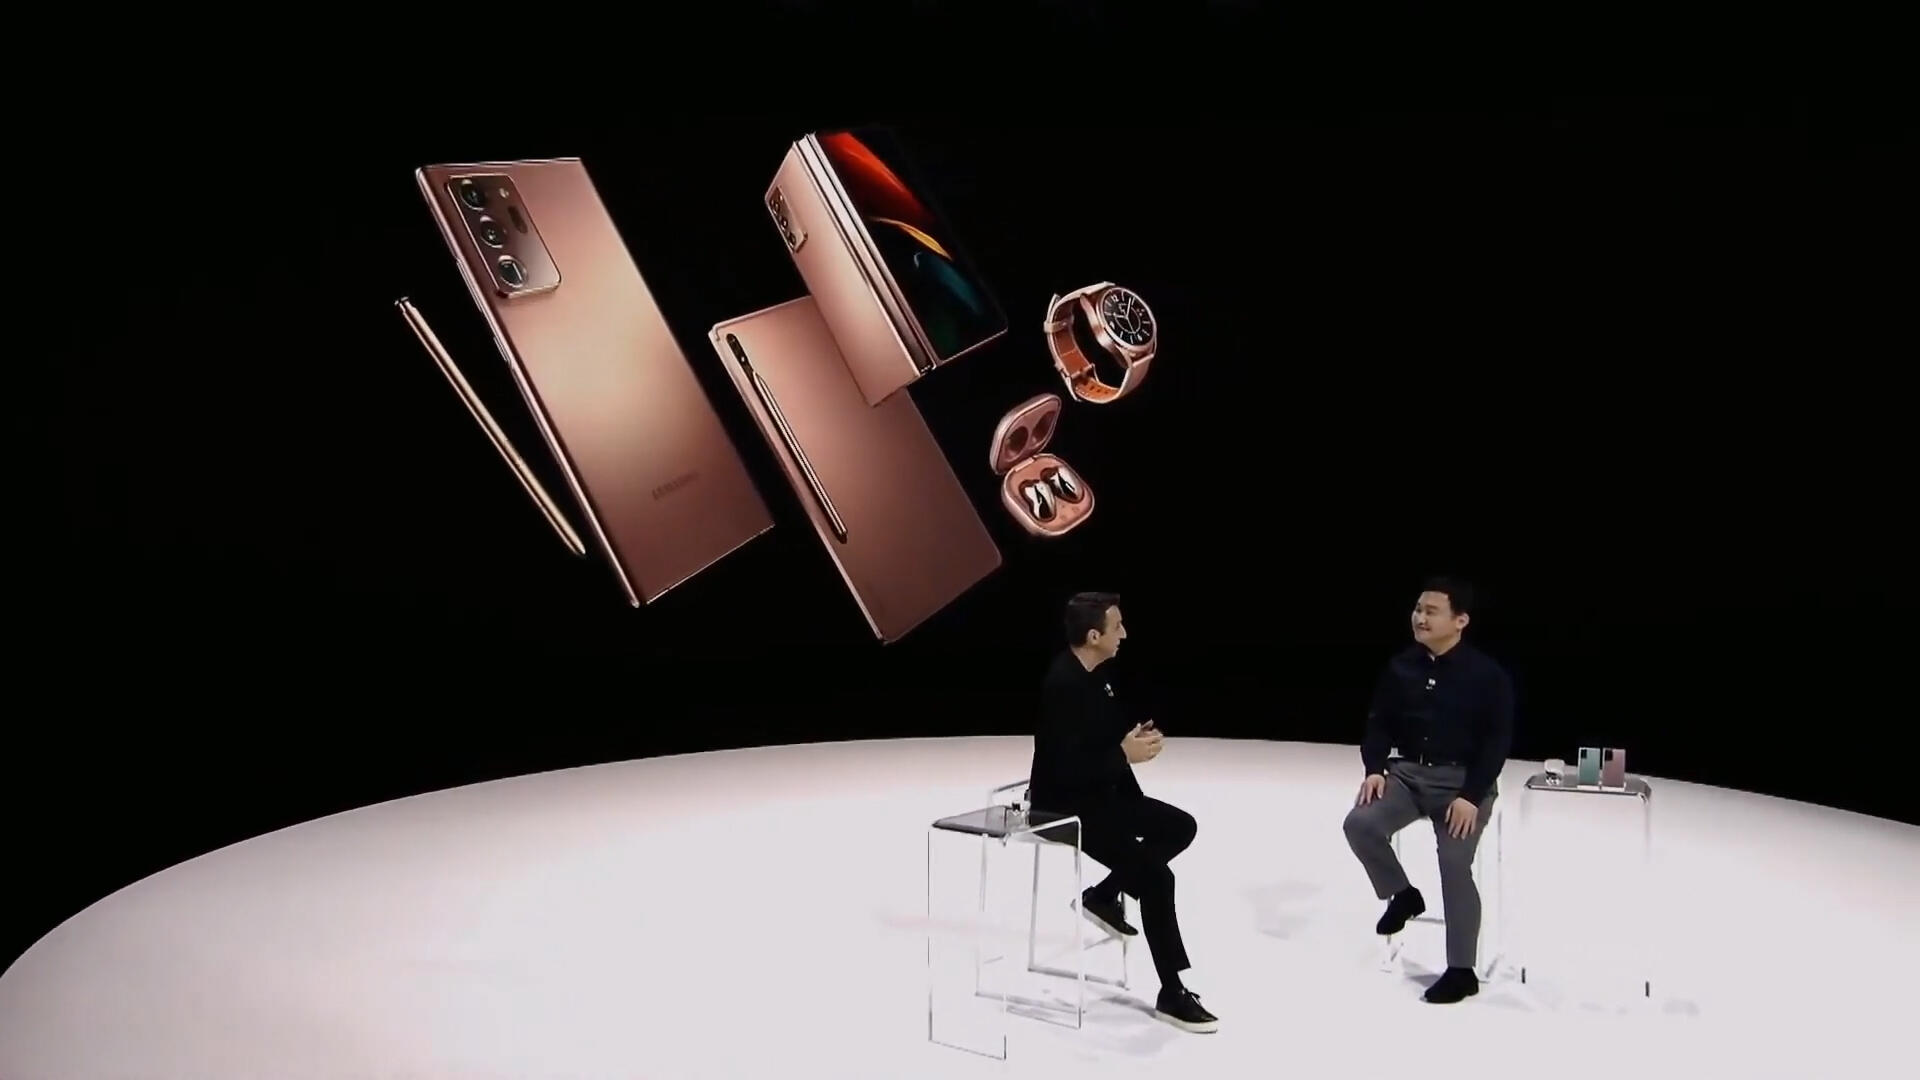 Video: Samsung Galaxy Note20 Ultra, Z Fold 2 and more announced in Unpacked event